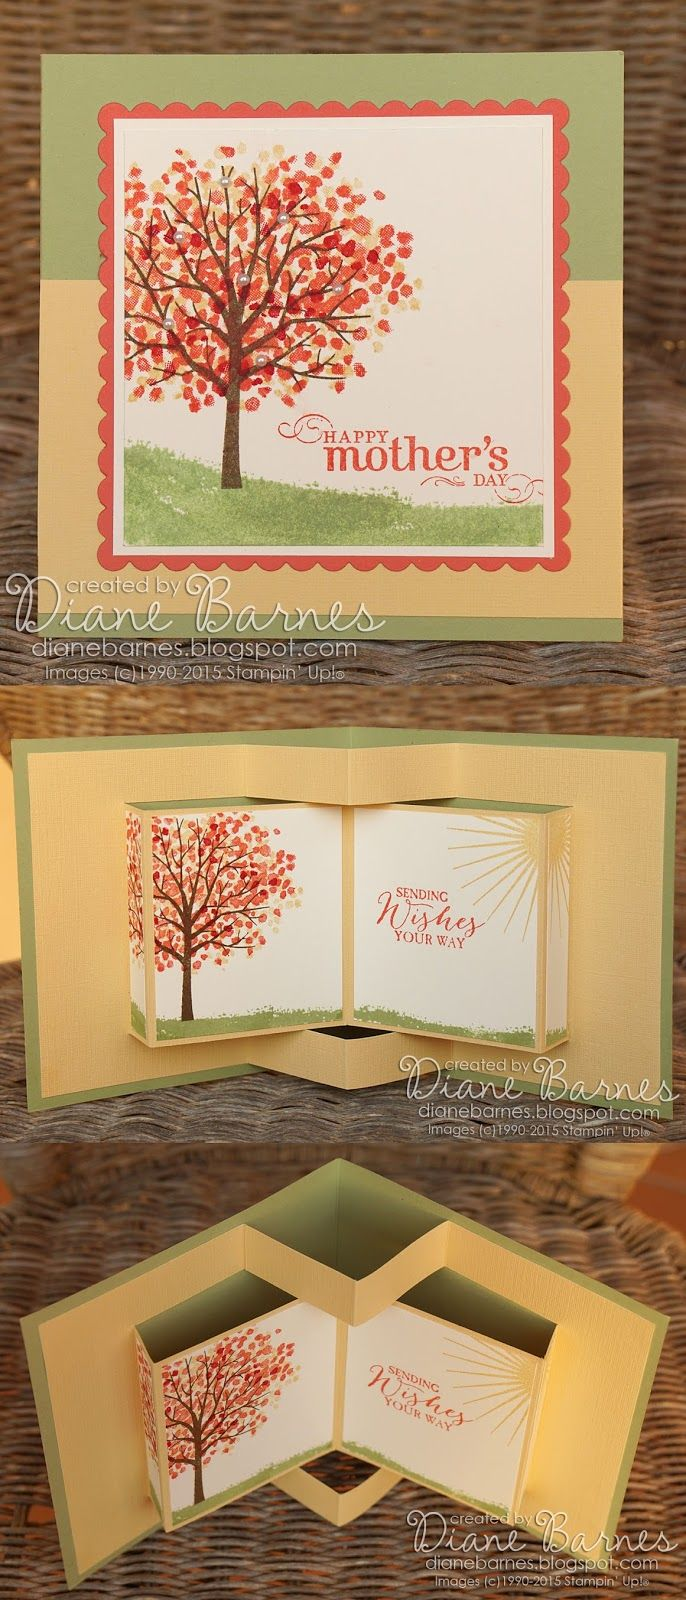 pop up book fancy fold card using Stampin Up Sheltering Tree with pdf template. By Di Barnes #colourmehappy